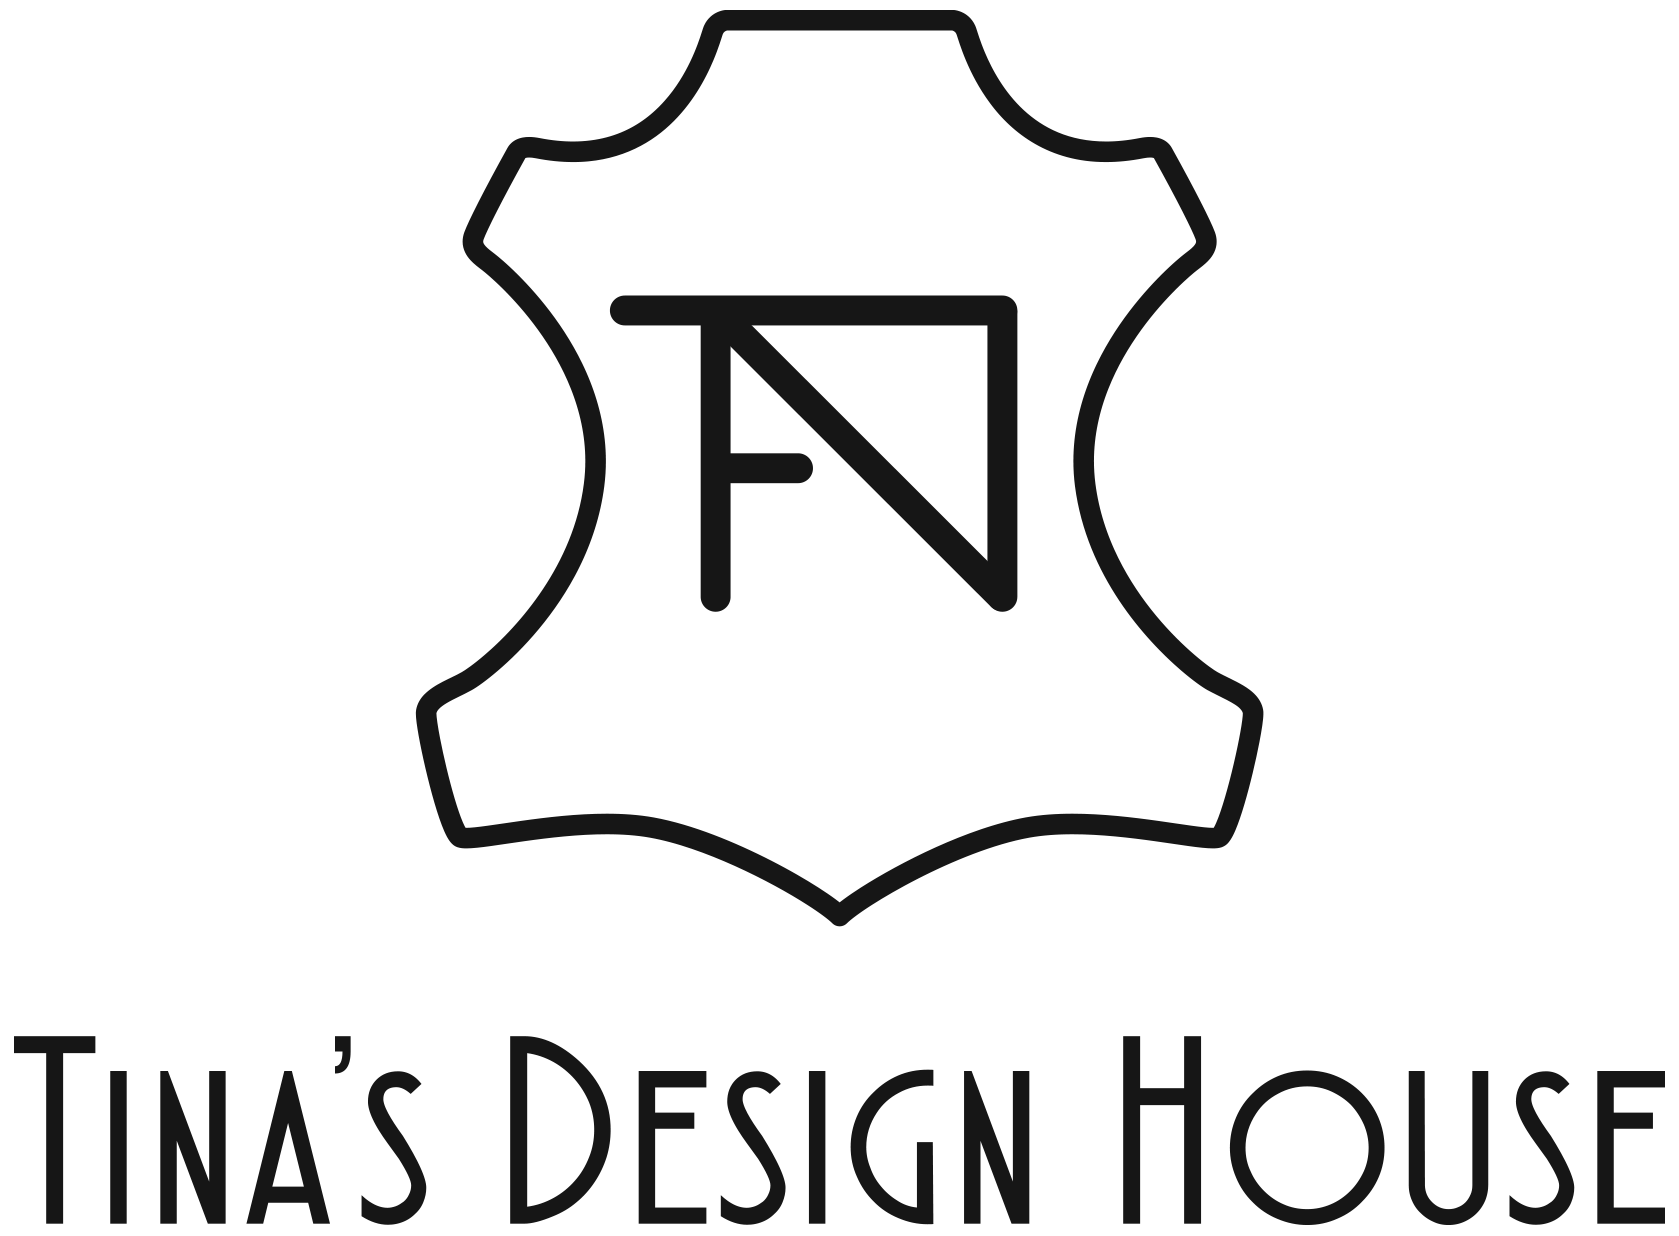 Tina's Design House